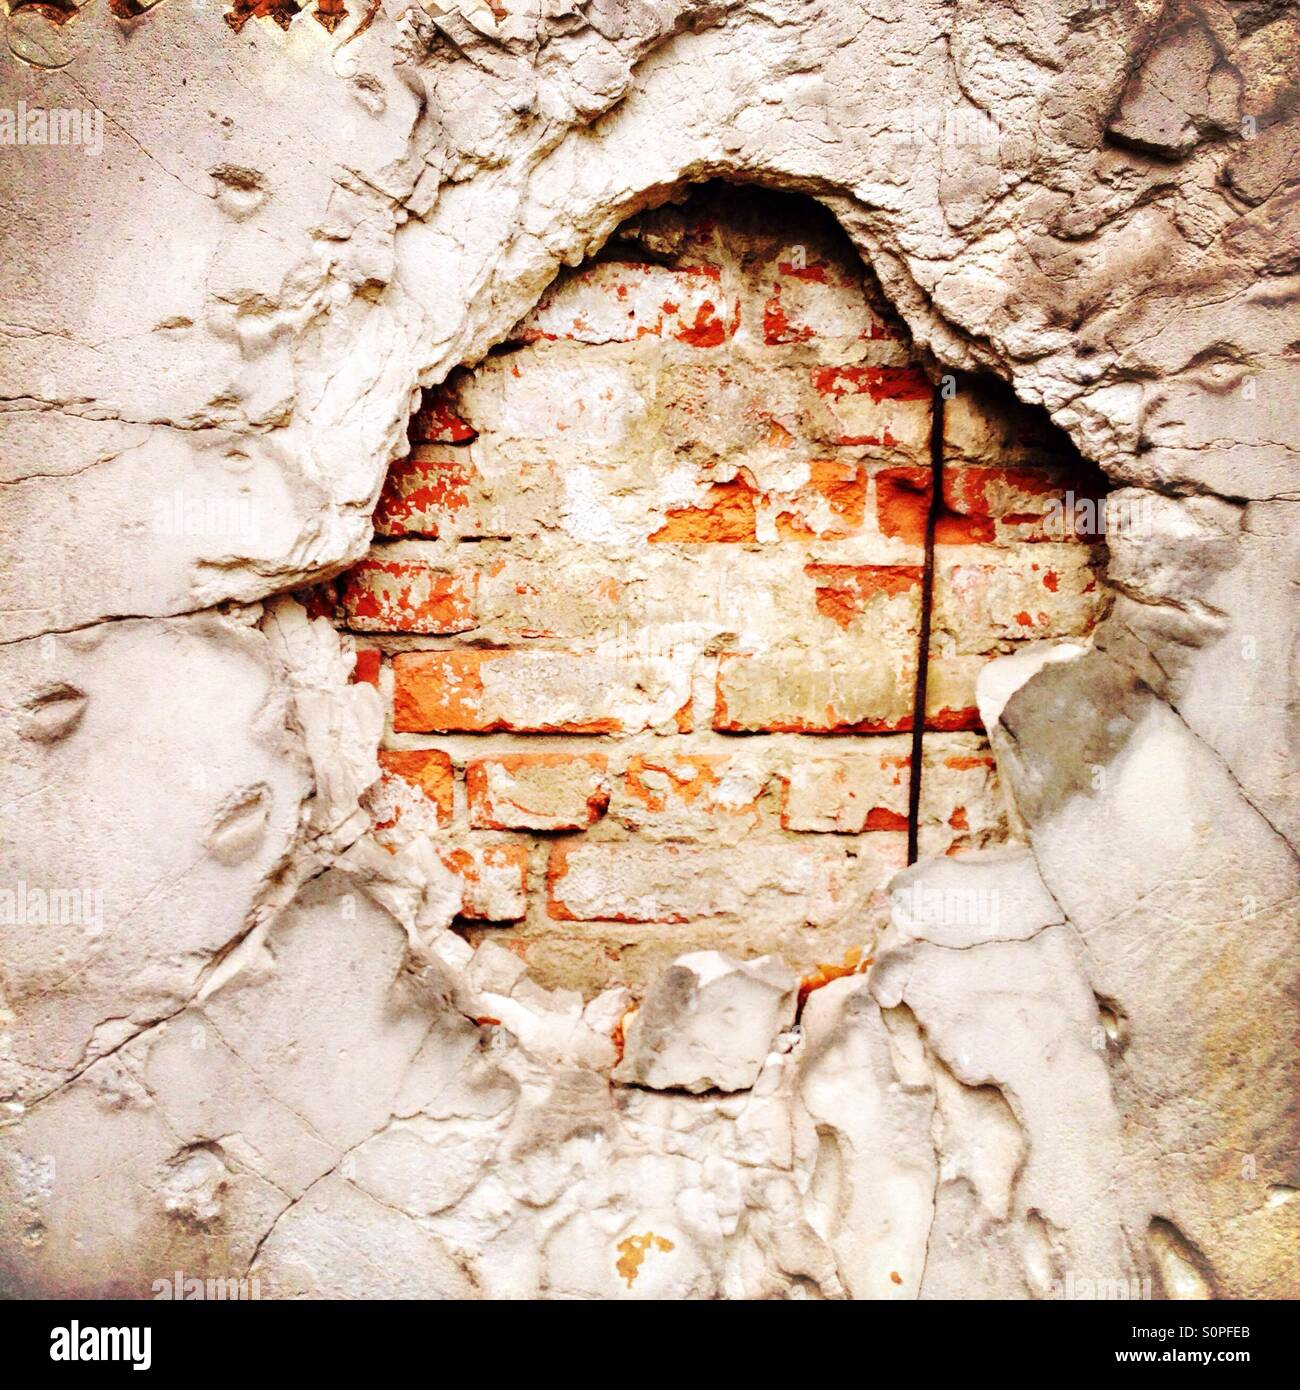 A hole that was created by the impact of a grenade during World War 2 in a wall on a cemetery in Berlin - Stock Image